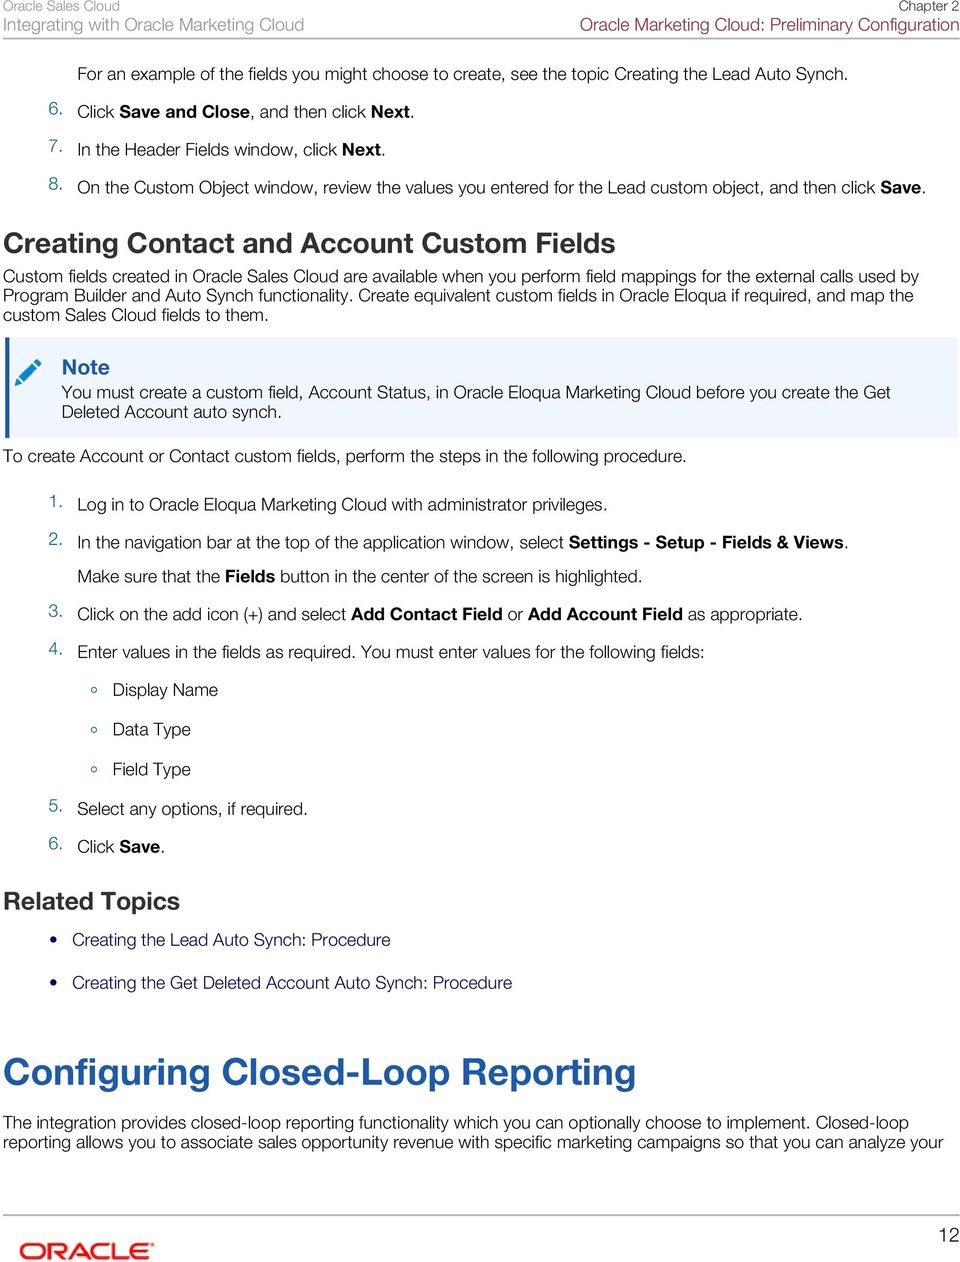 Creating Contact and Account Custom Fields Custom fields created in are available when you perform field mappings for the external calls used by Program Builder and Auto Synch functionality.